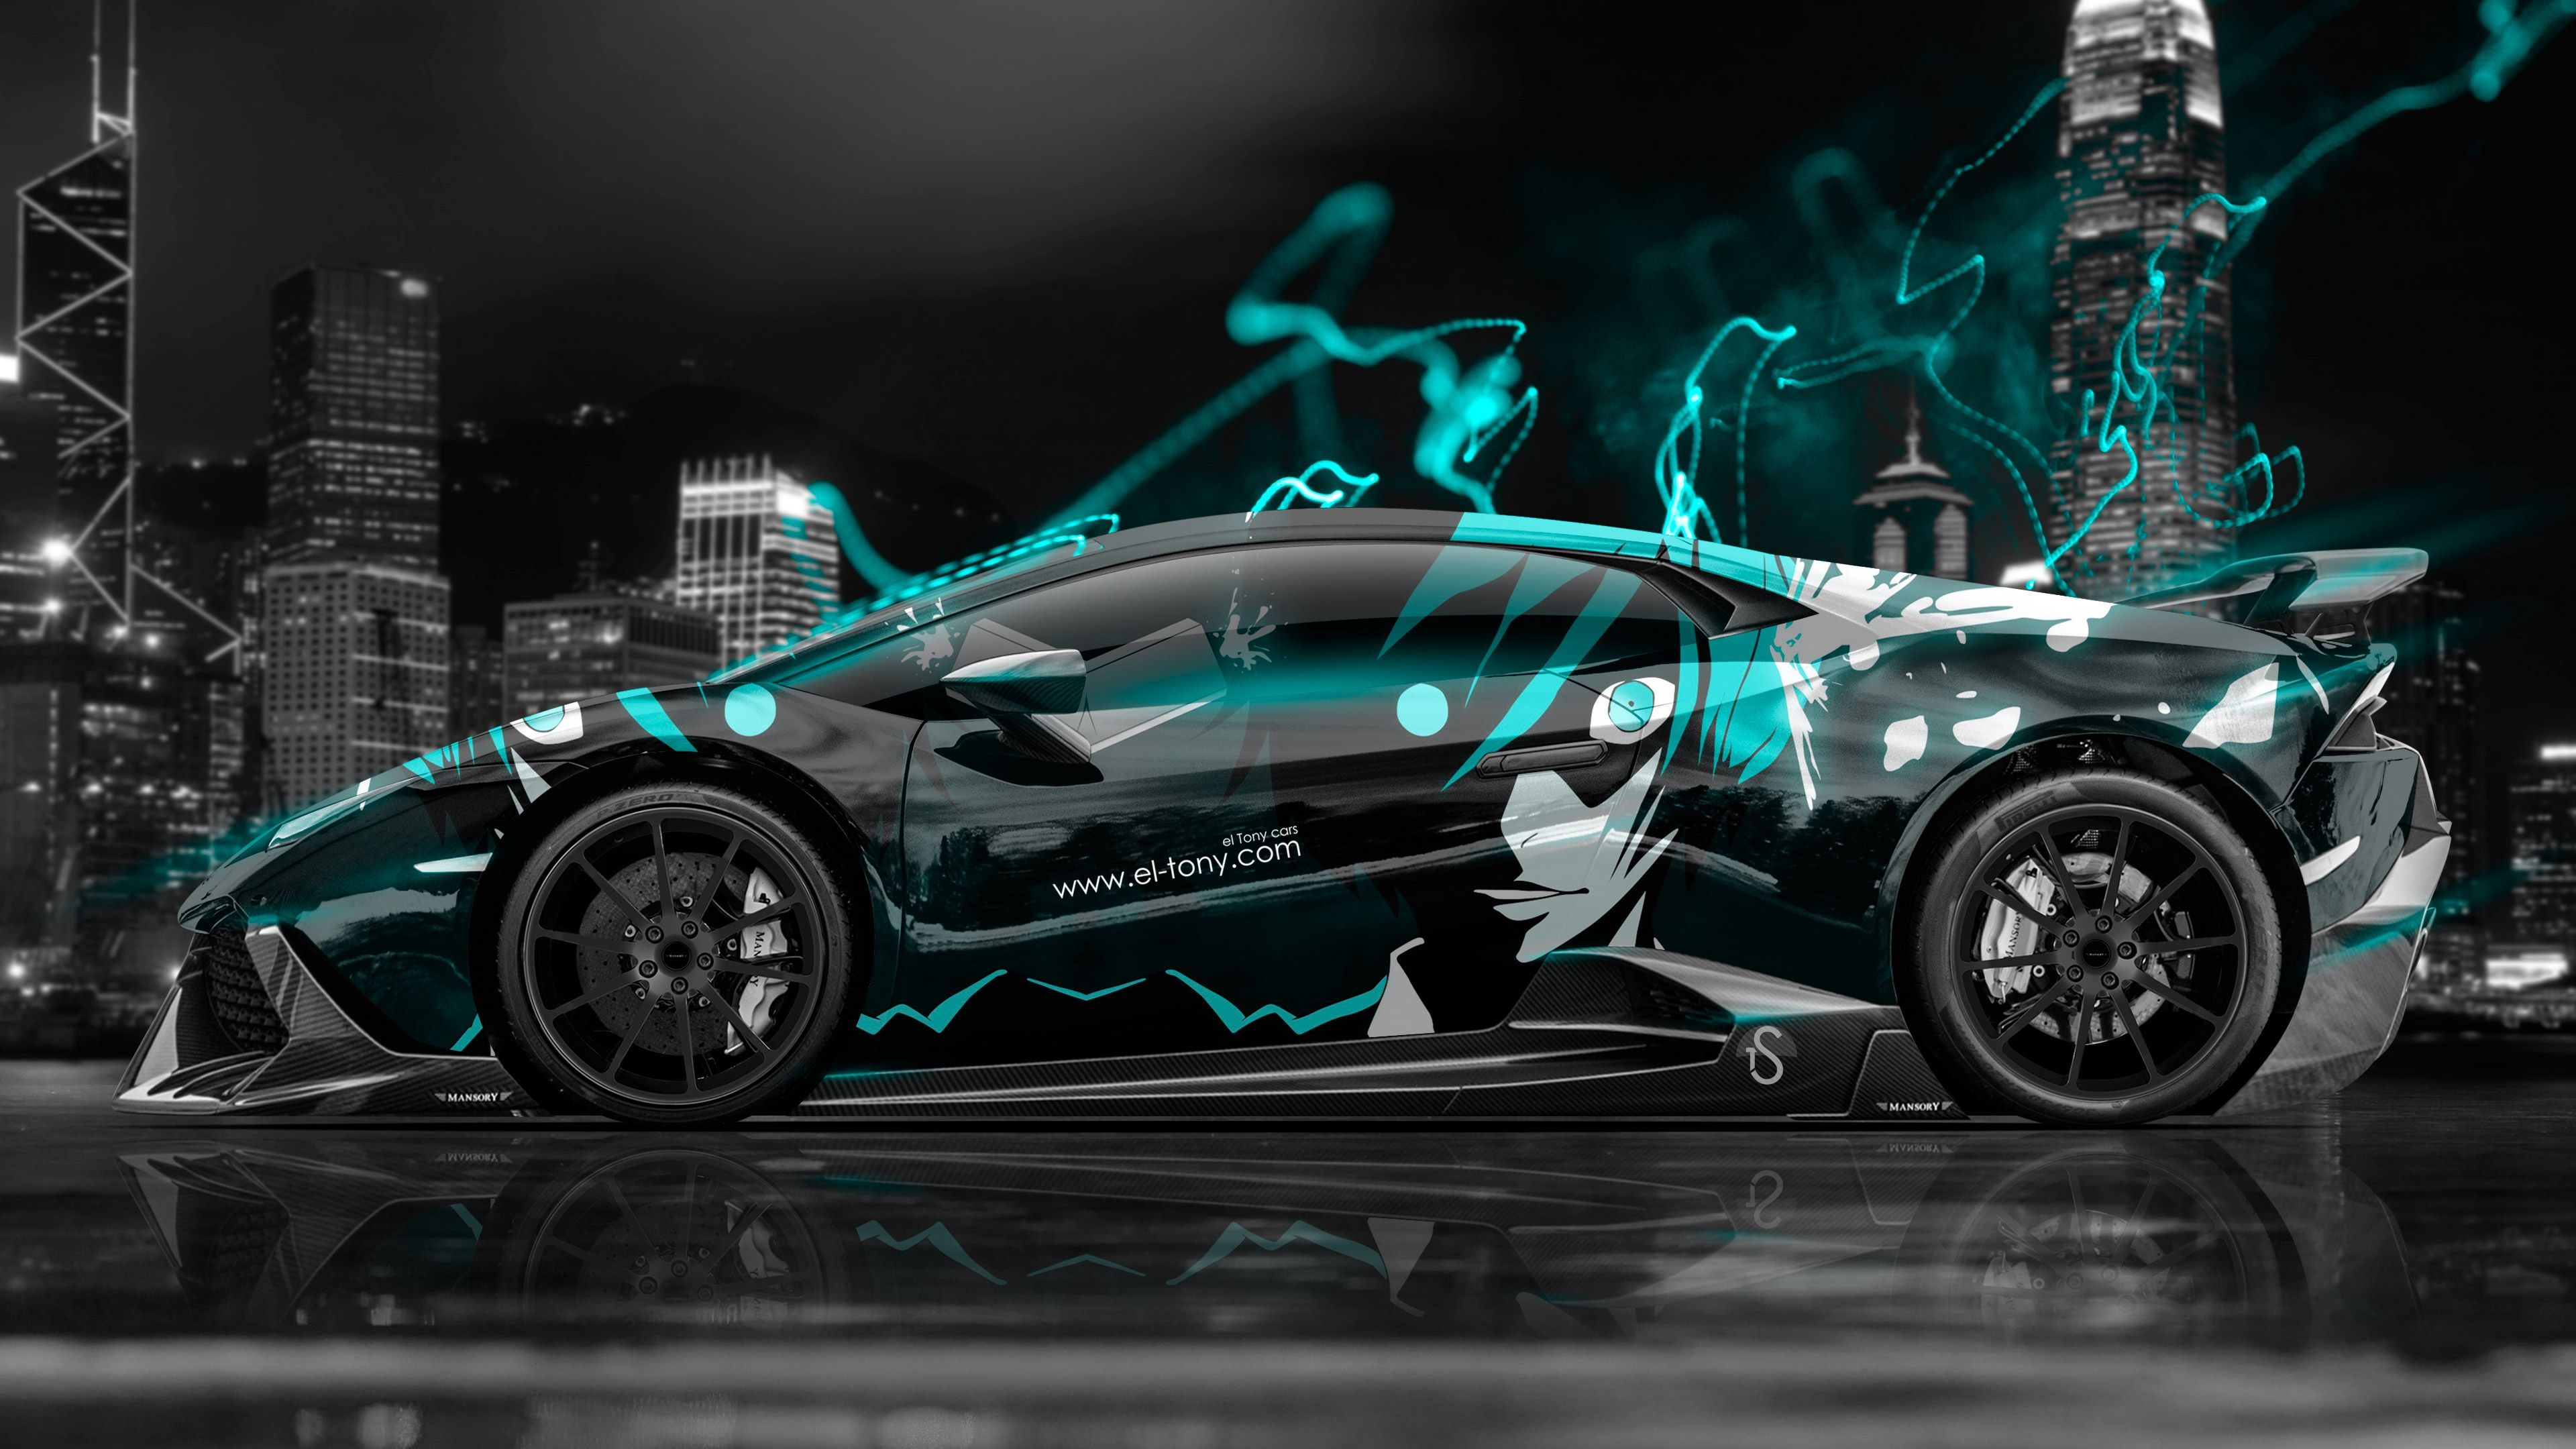 Lamborghini  Huracan Mansory Tuning Side Anime Boy Aerography City Energy Car 2015 Art Azure Neon  Effects 4K Wallpapers Design By Tony Kokhan Www.el Tony.com ...